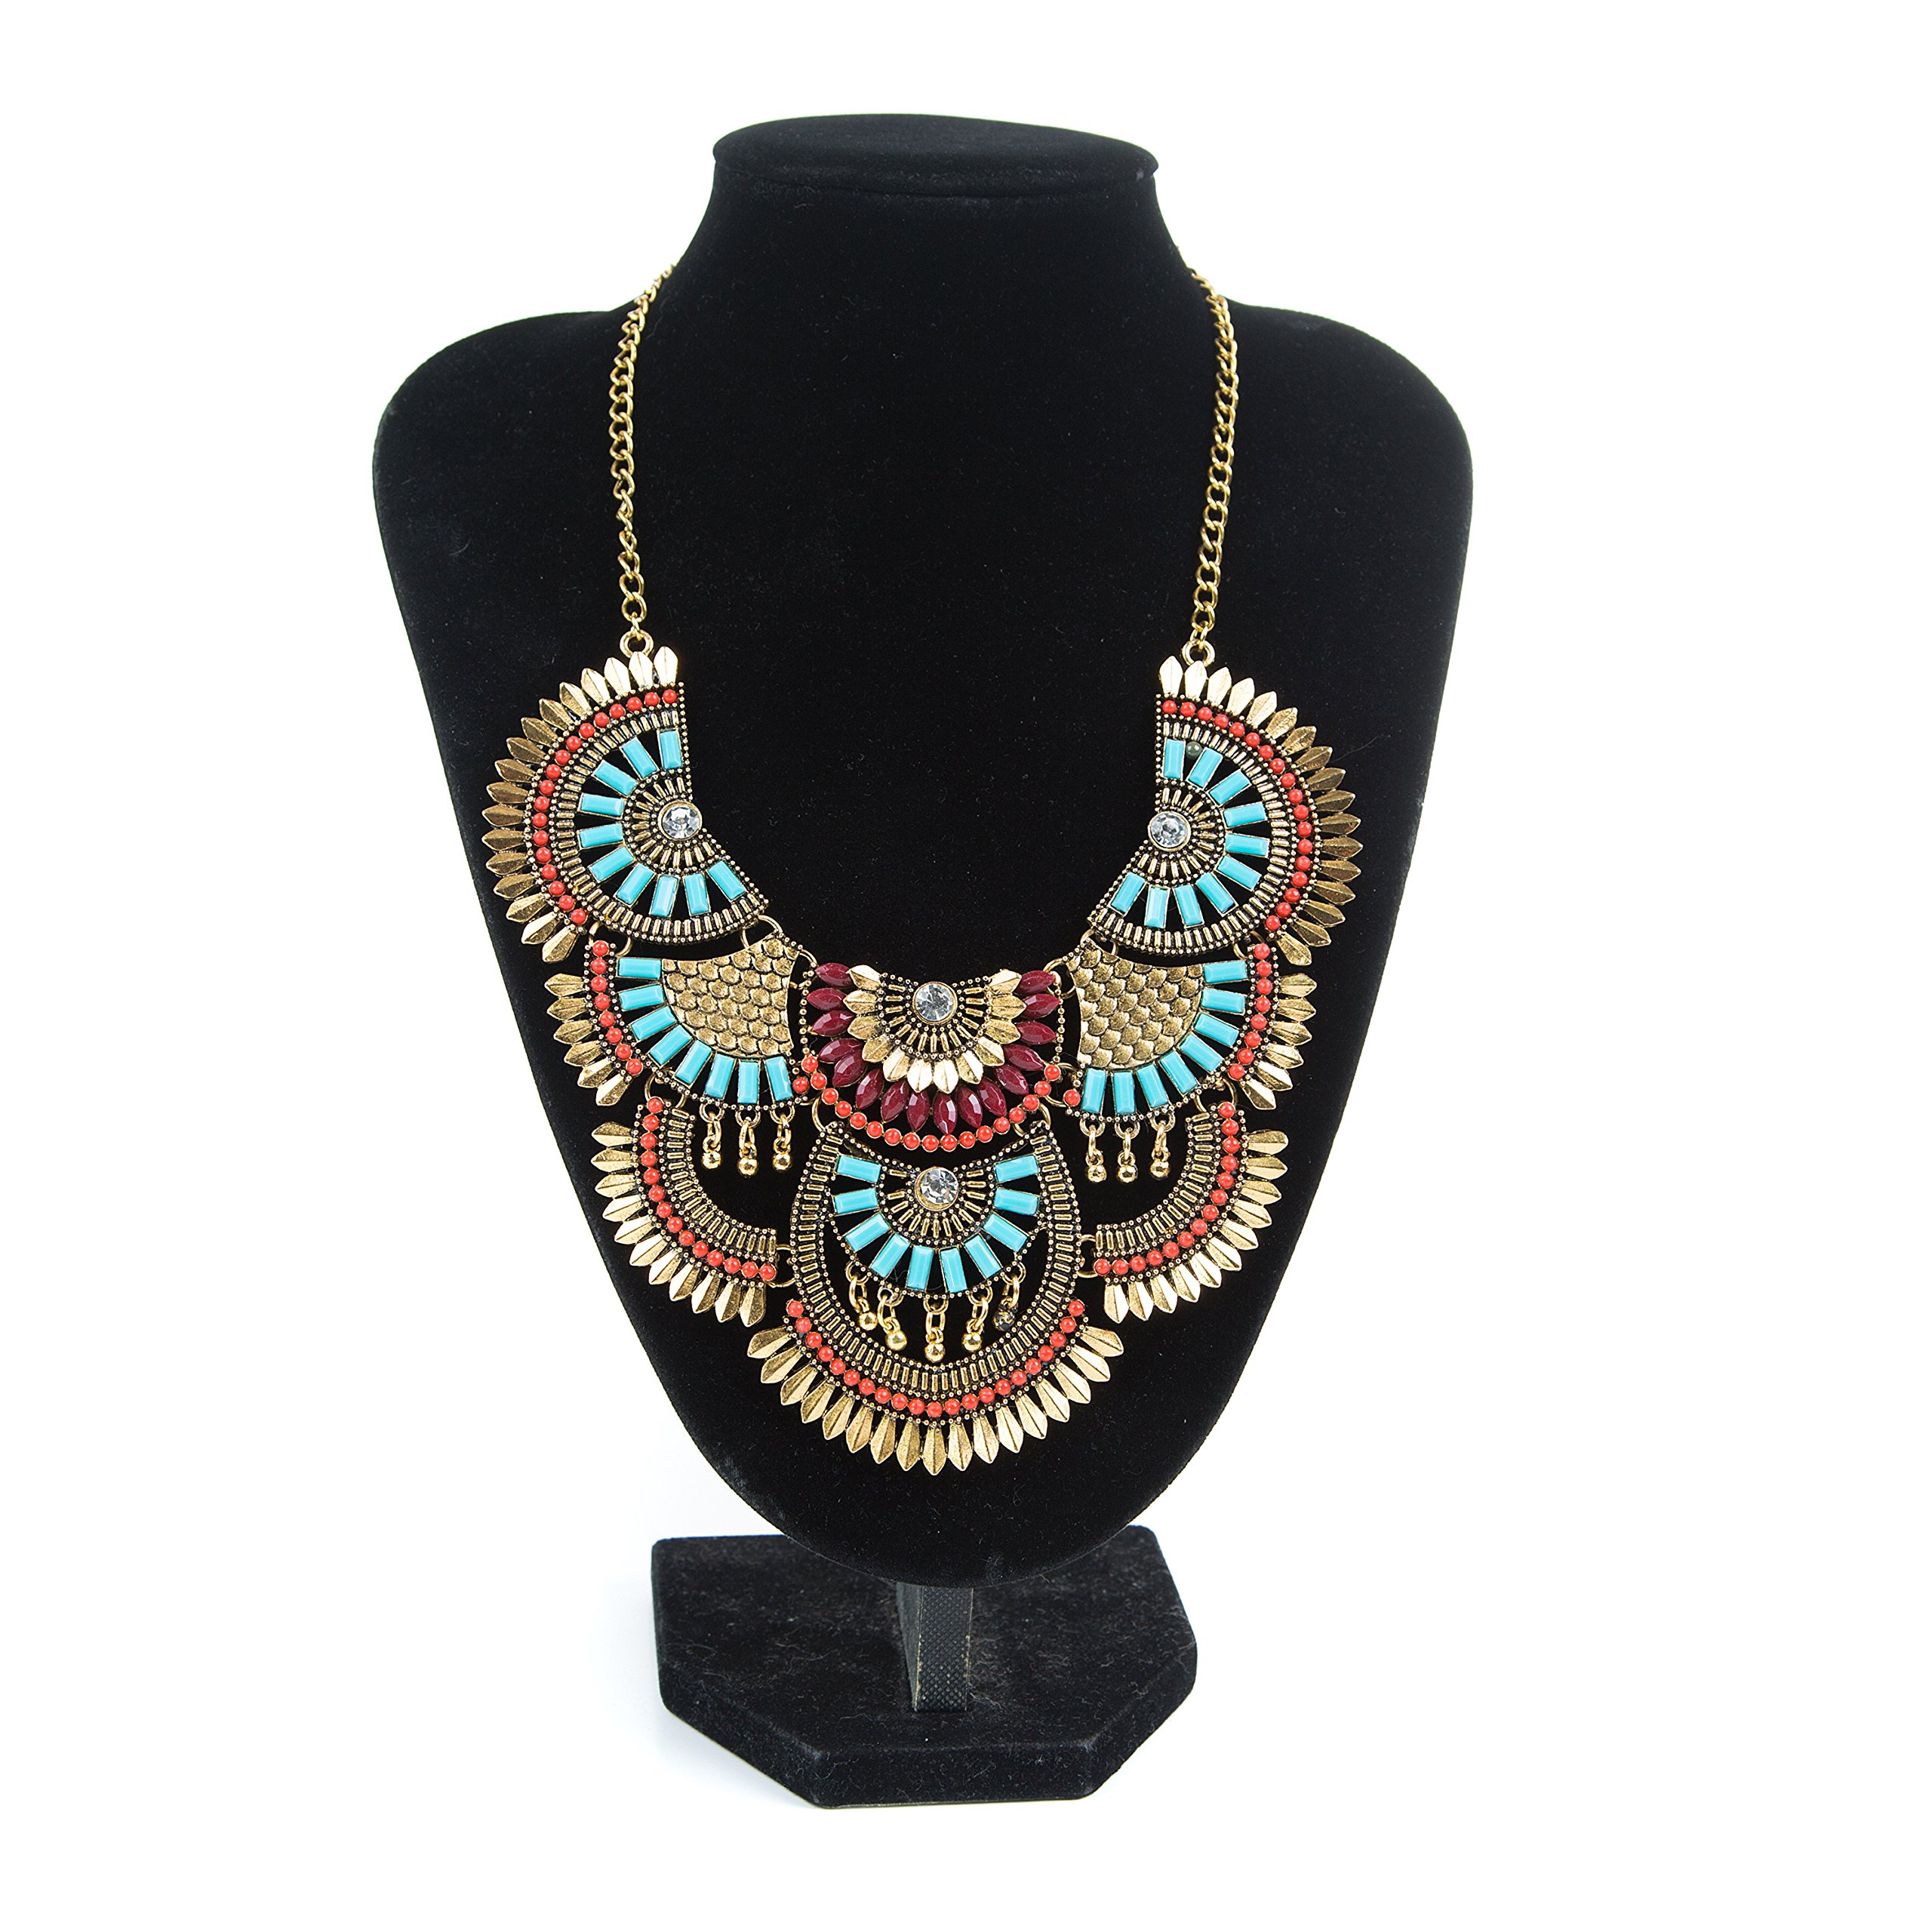 Miraculous Garden Womens Vintage Alloy Silver/Gold Boho Bohemian Necklace Ethnic Tribal Boho Necklace Turquoise Beads Crystal Necklace (Antique Gold)